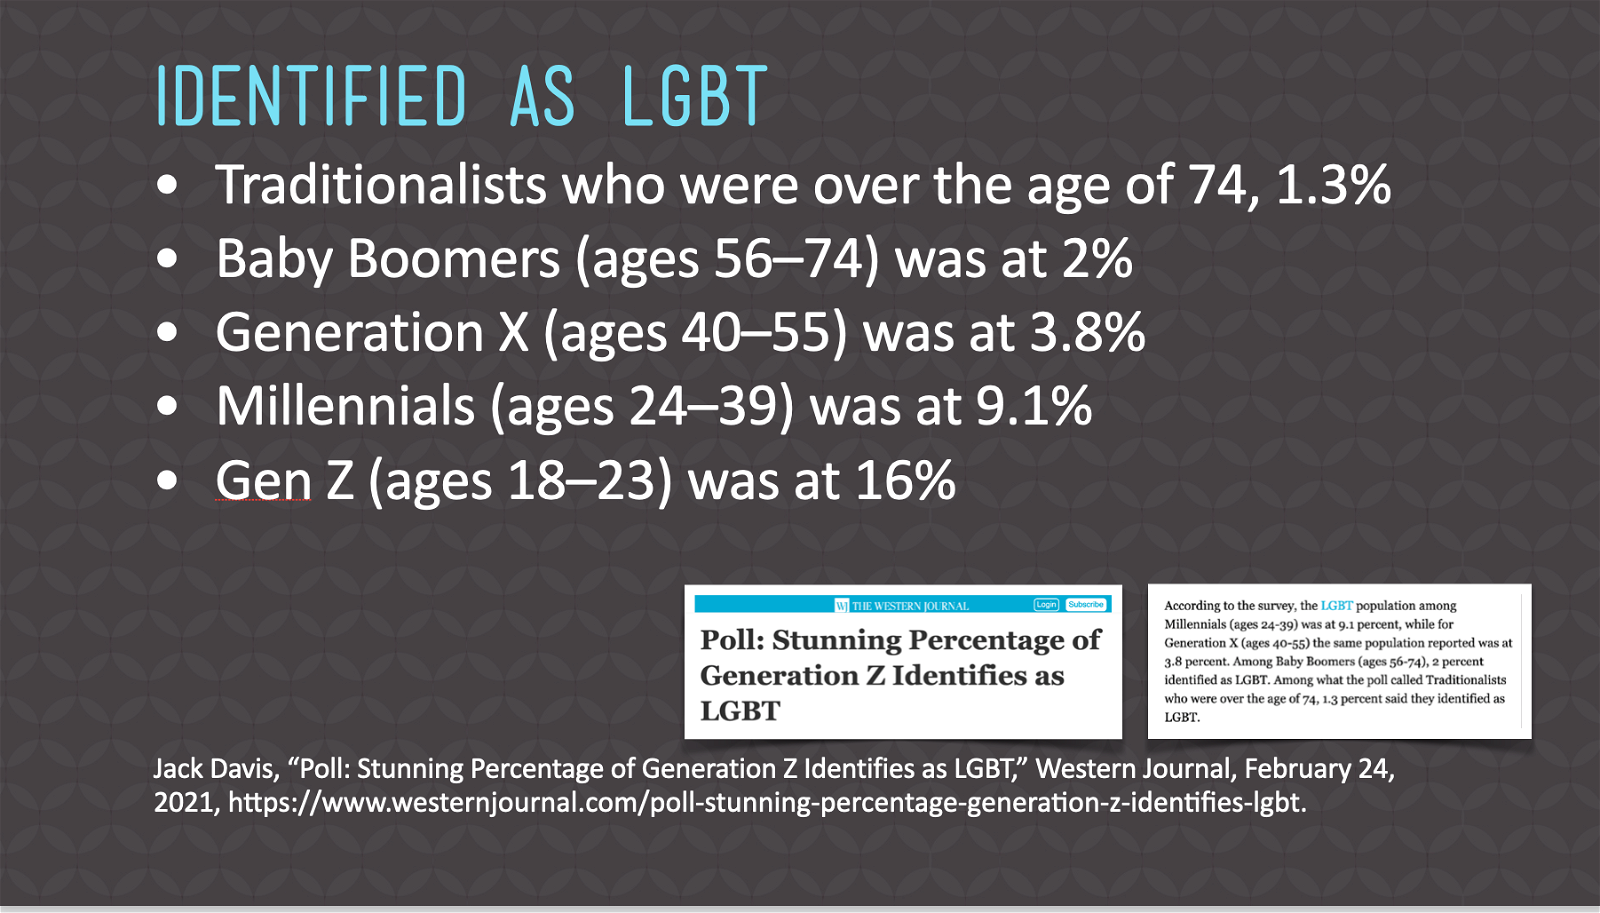 Identified as LGBT Slide